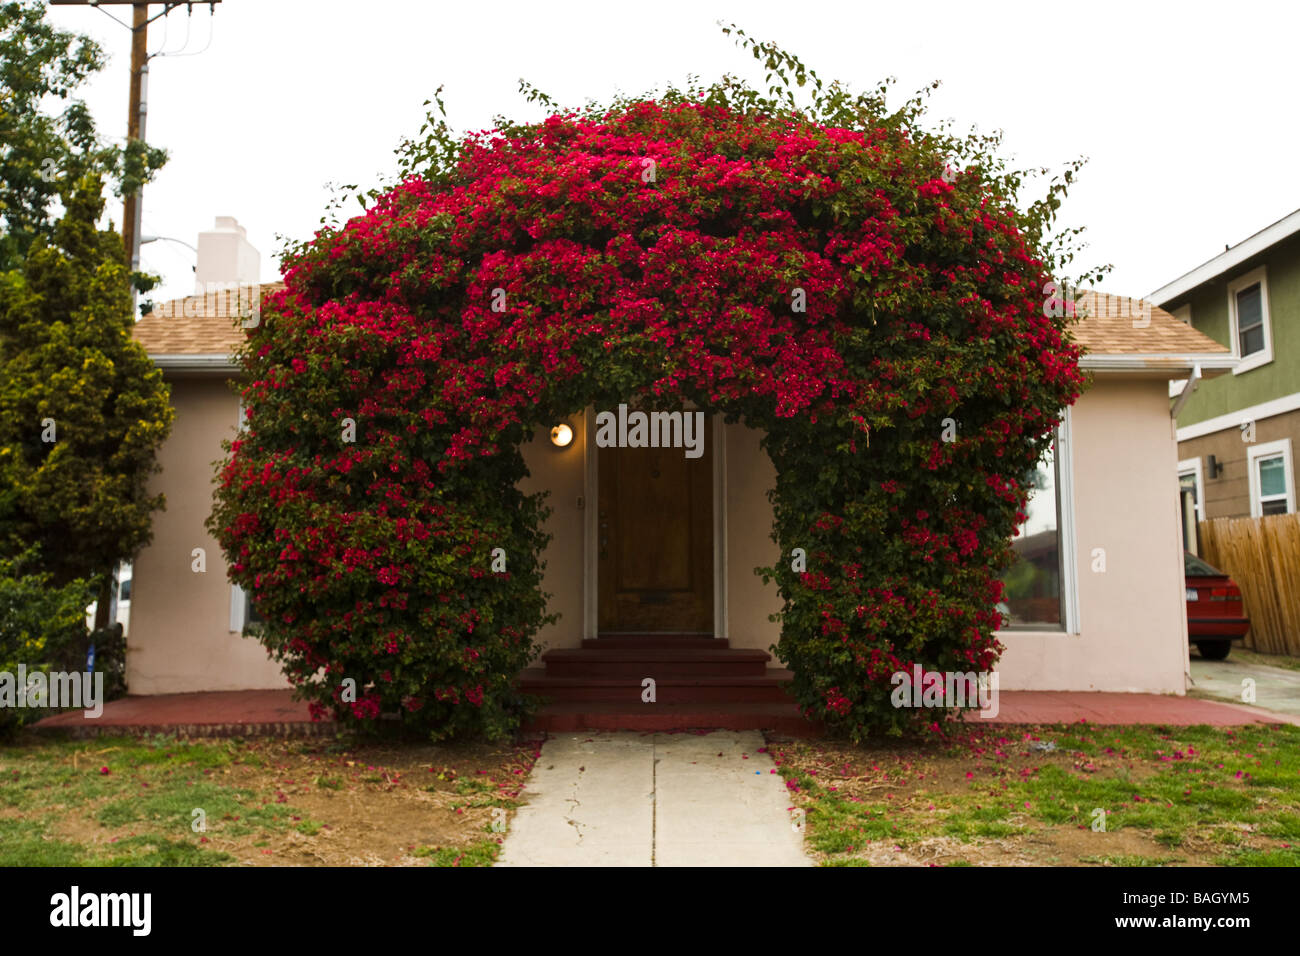 Rote Bougainvillea Busch Umgibt Haustur Hollywood Los Angeles County